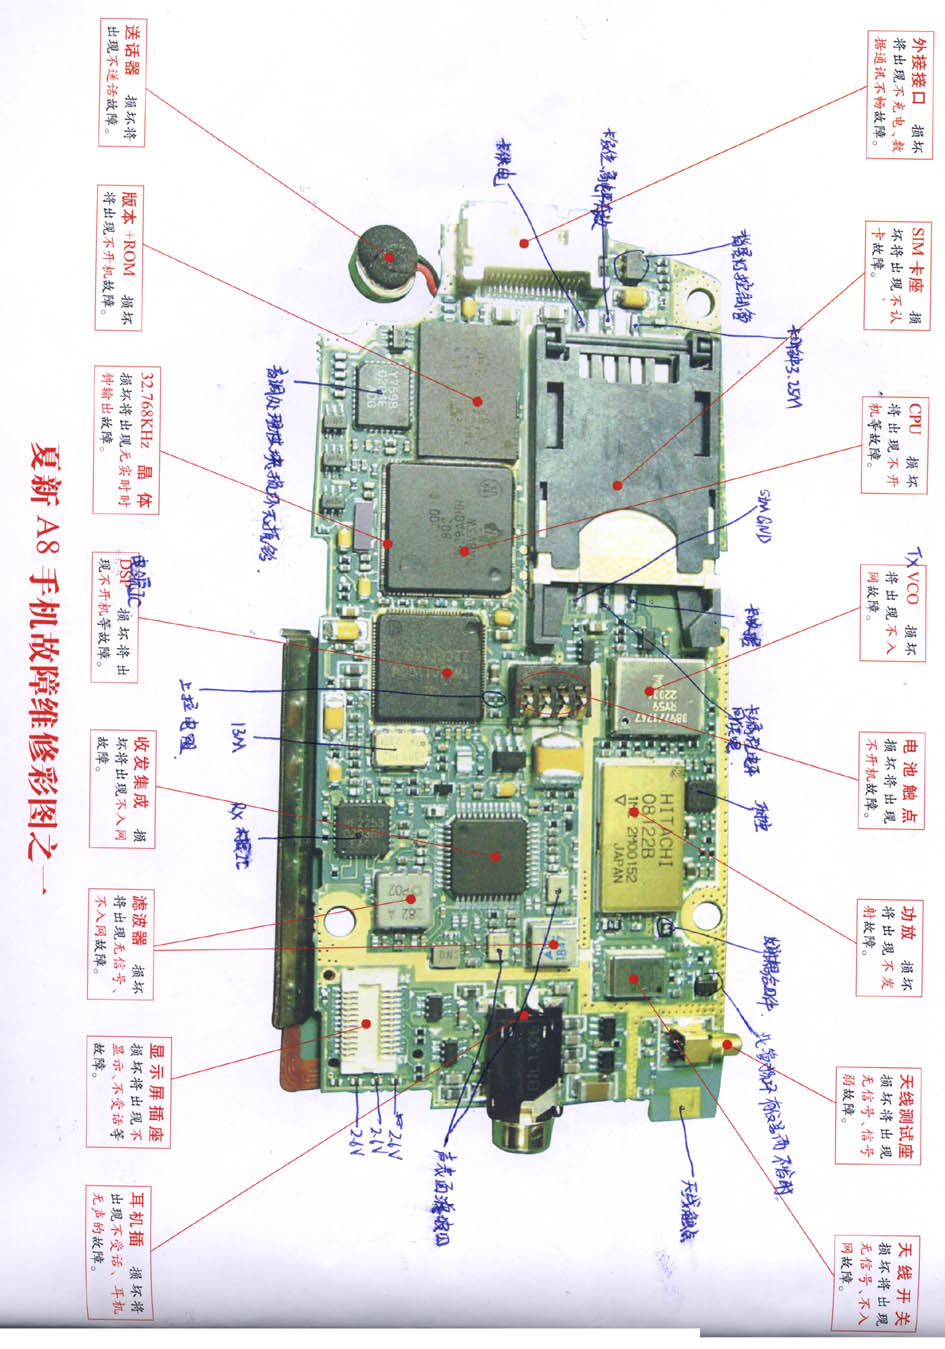 Amoisonic a8 cell phone fault maintaining diagram 1 amoisonic a8 cell phone fault maintaining diagram 1 ccuart Choice Image